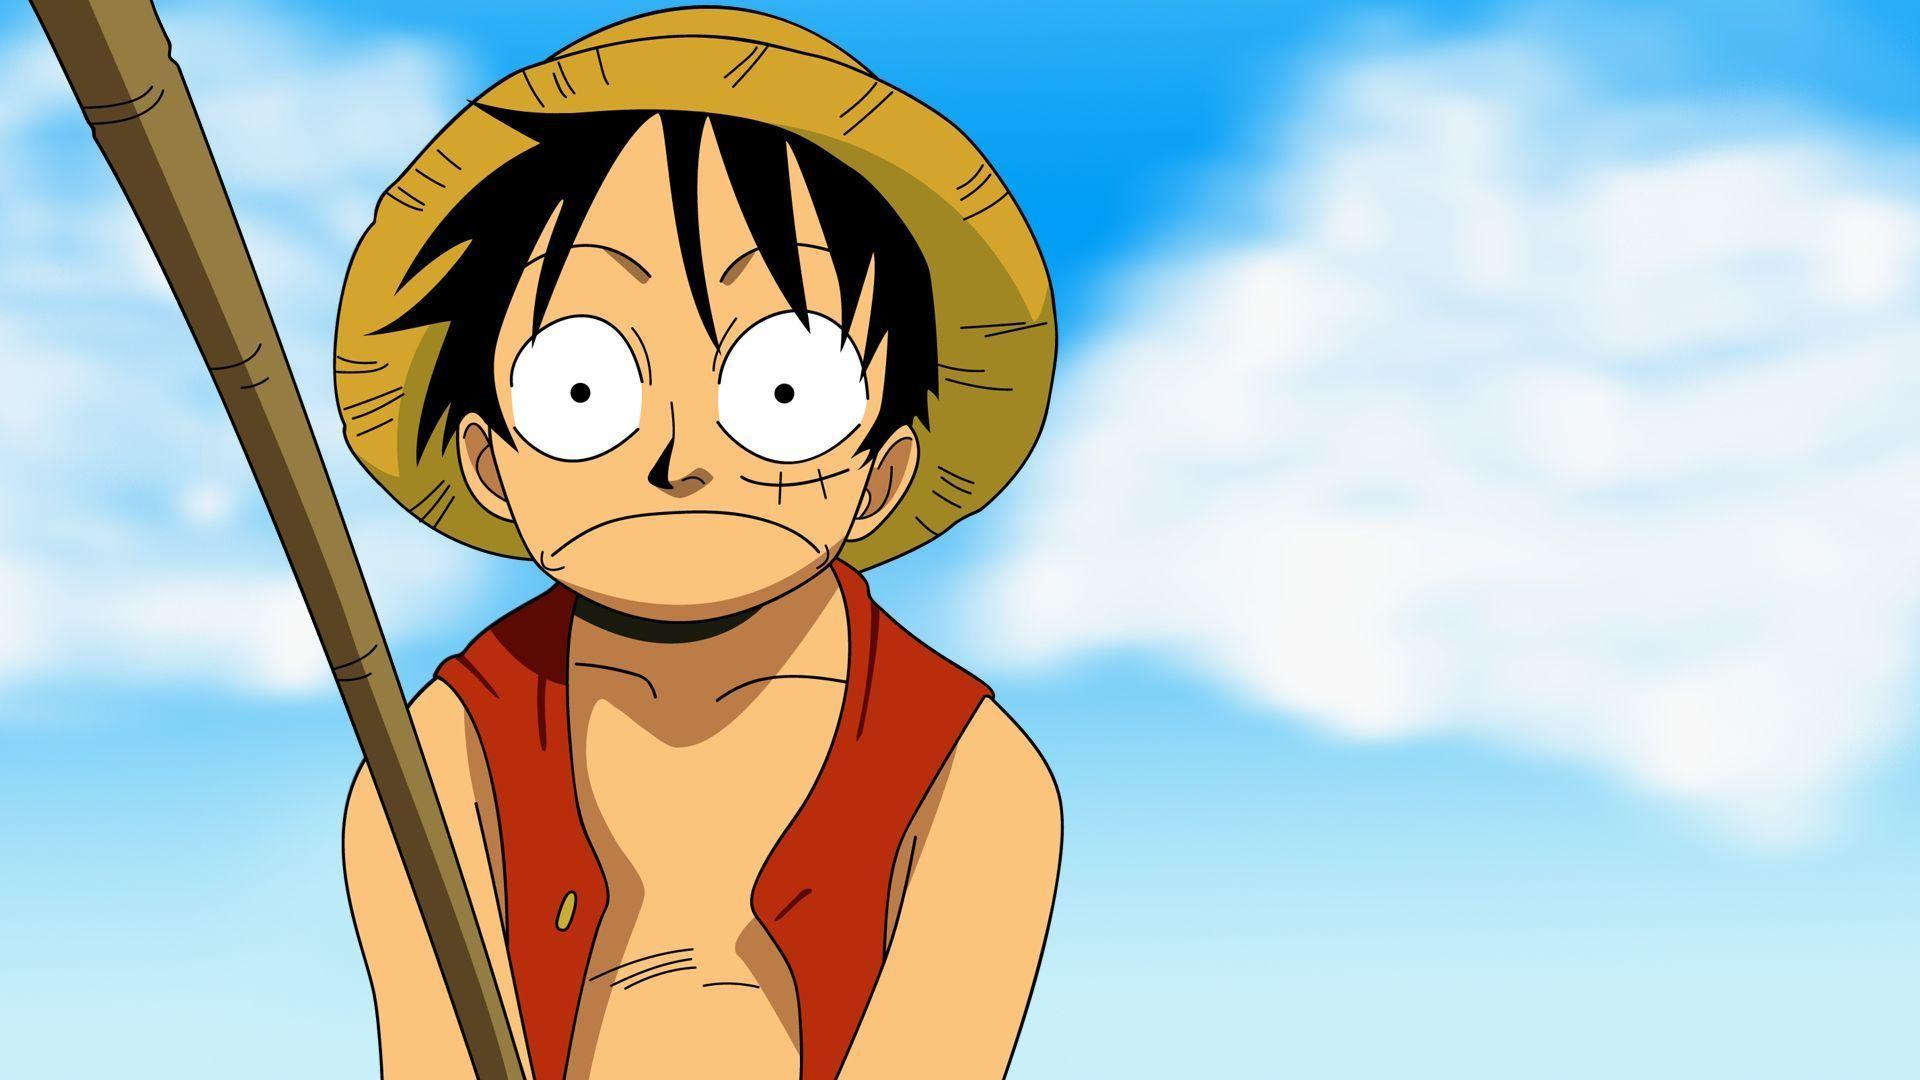 Wallpapers For > One Piece Wallpapers 1920x1080 Luffy